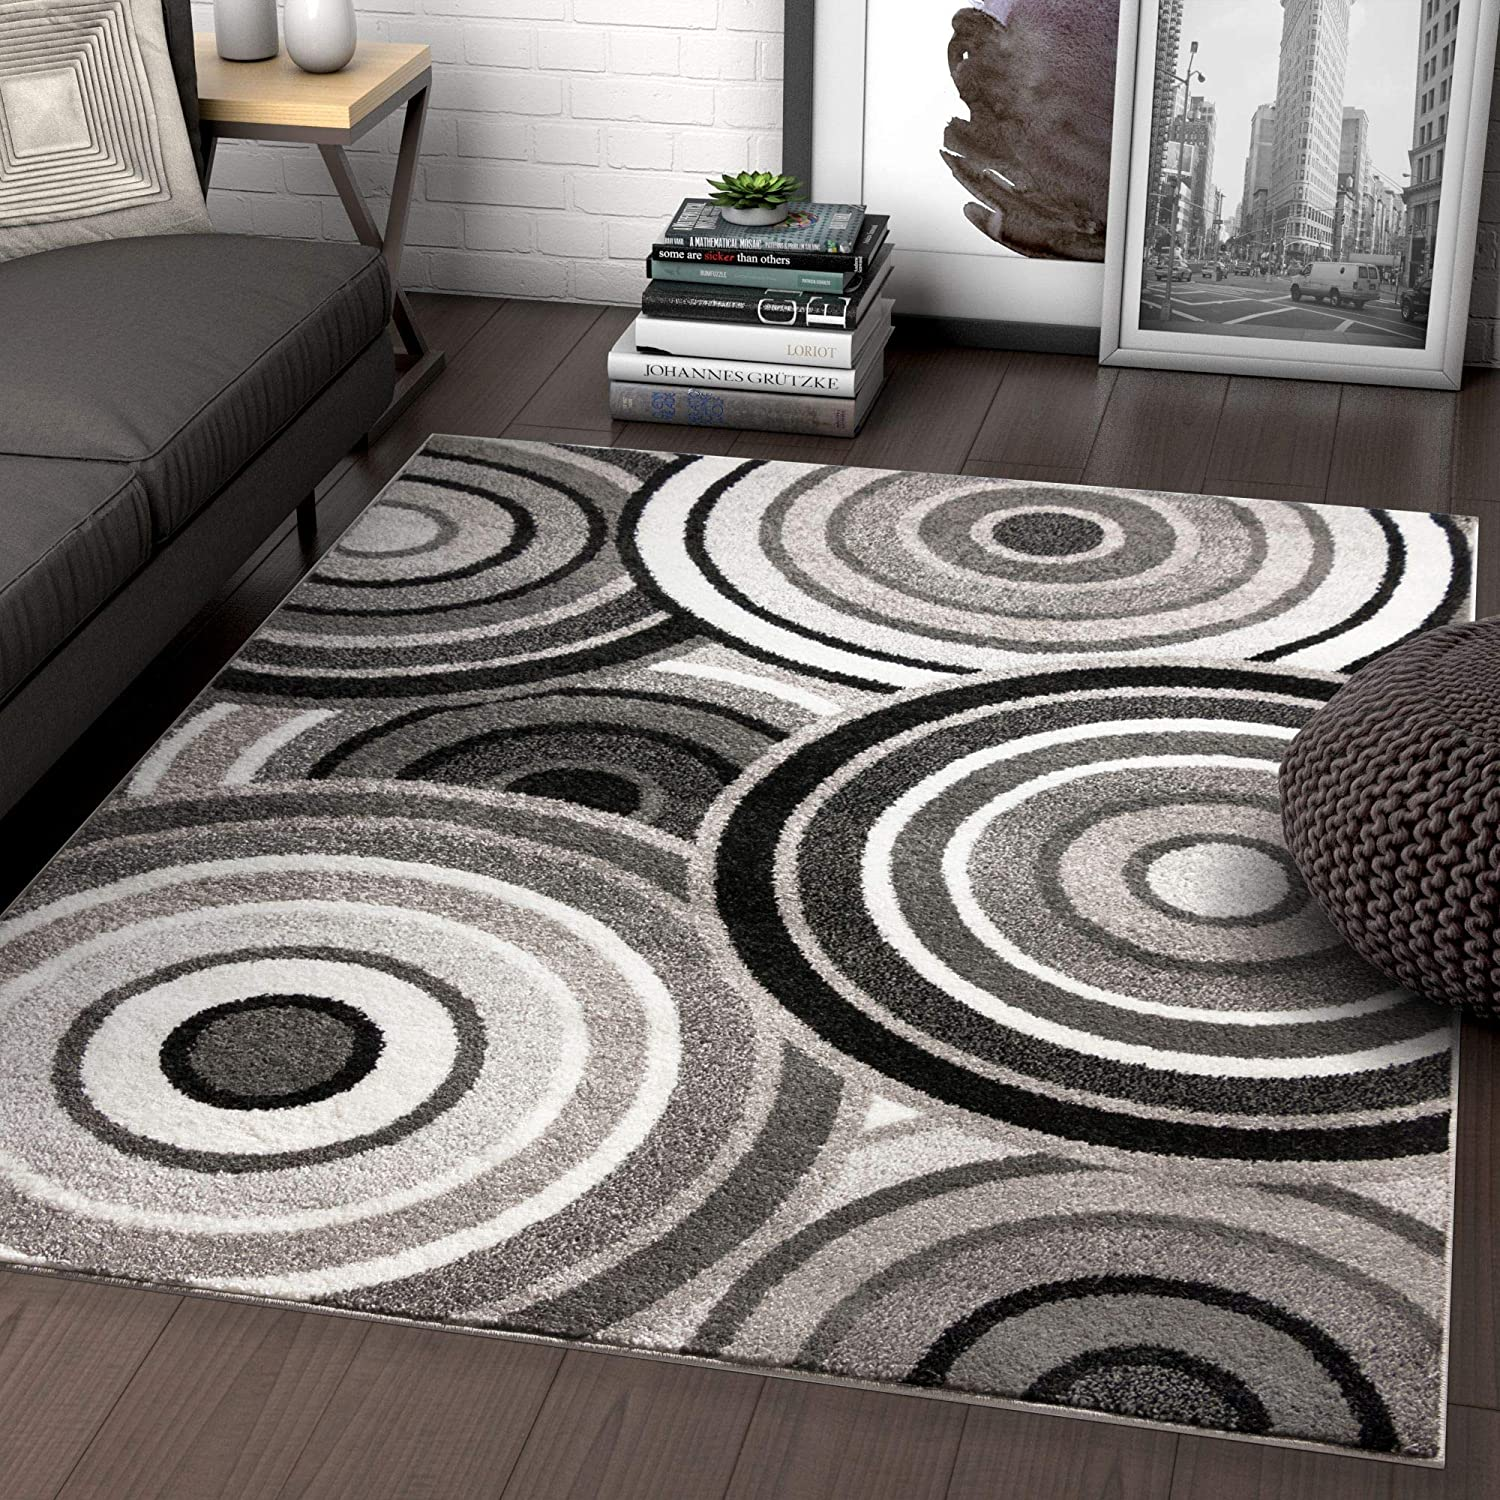 Well Woven Carey Abstract Grey Black Modern Geometric Circles 5x7 5 X 7 Area Rug Home Kitchen